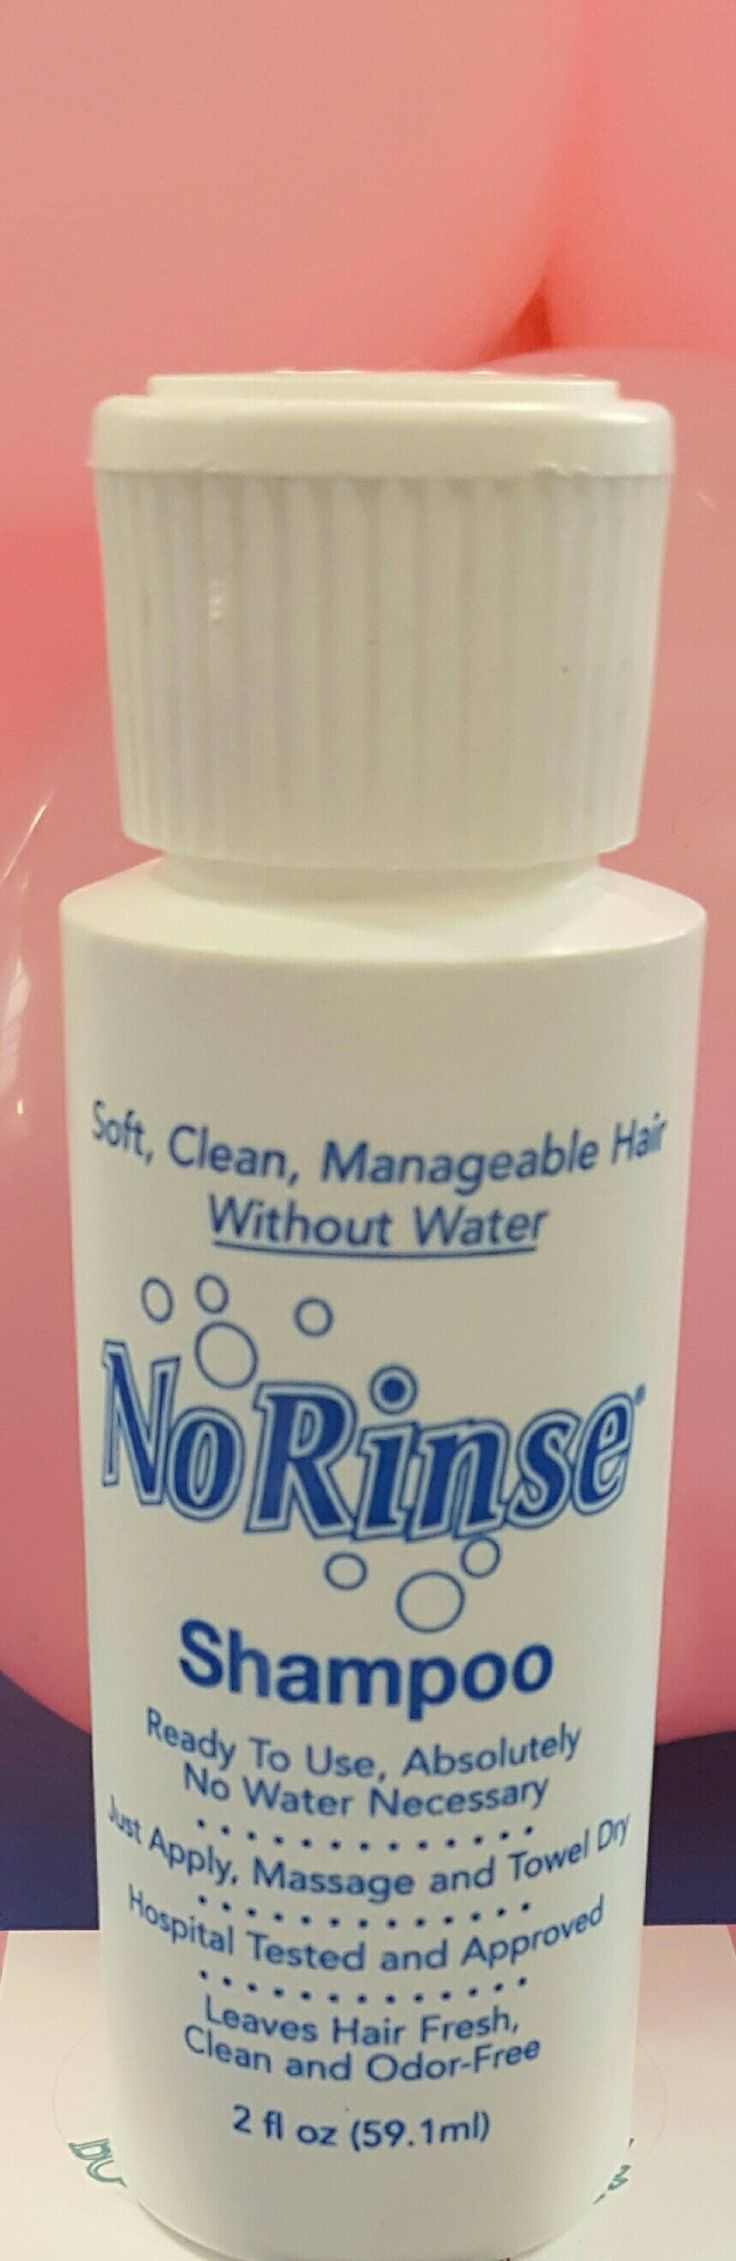 No rinse shampoo is the best for anything from camping too hospital stays. Www.olympiaretreat.com